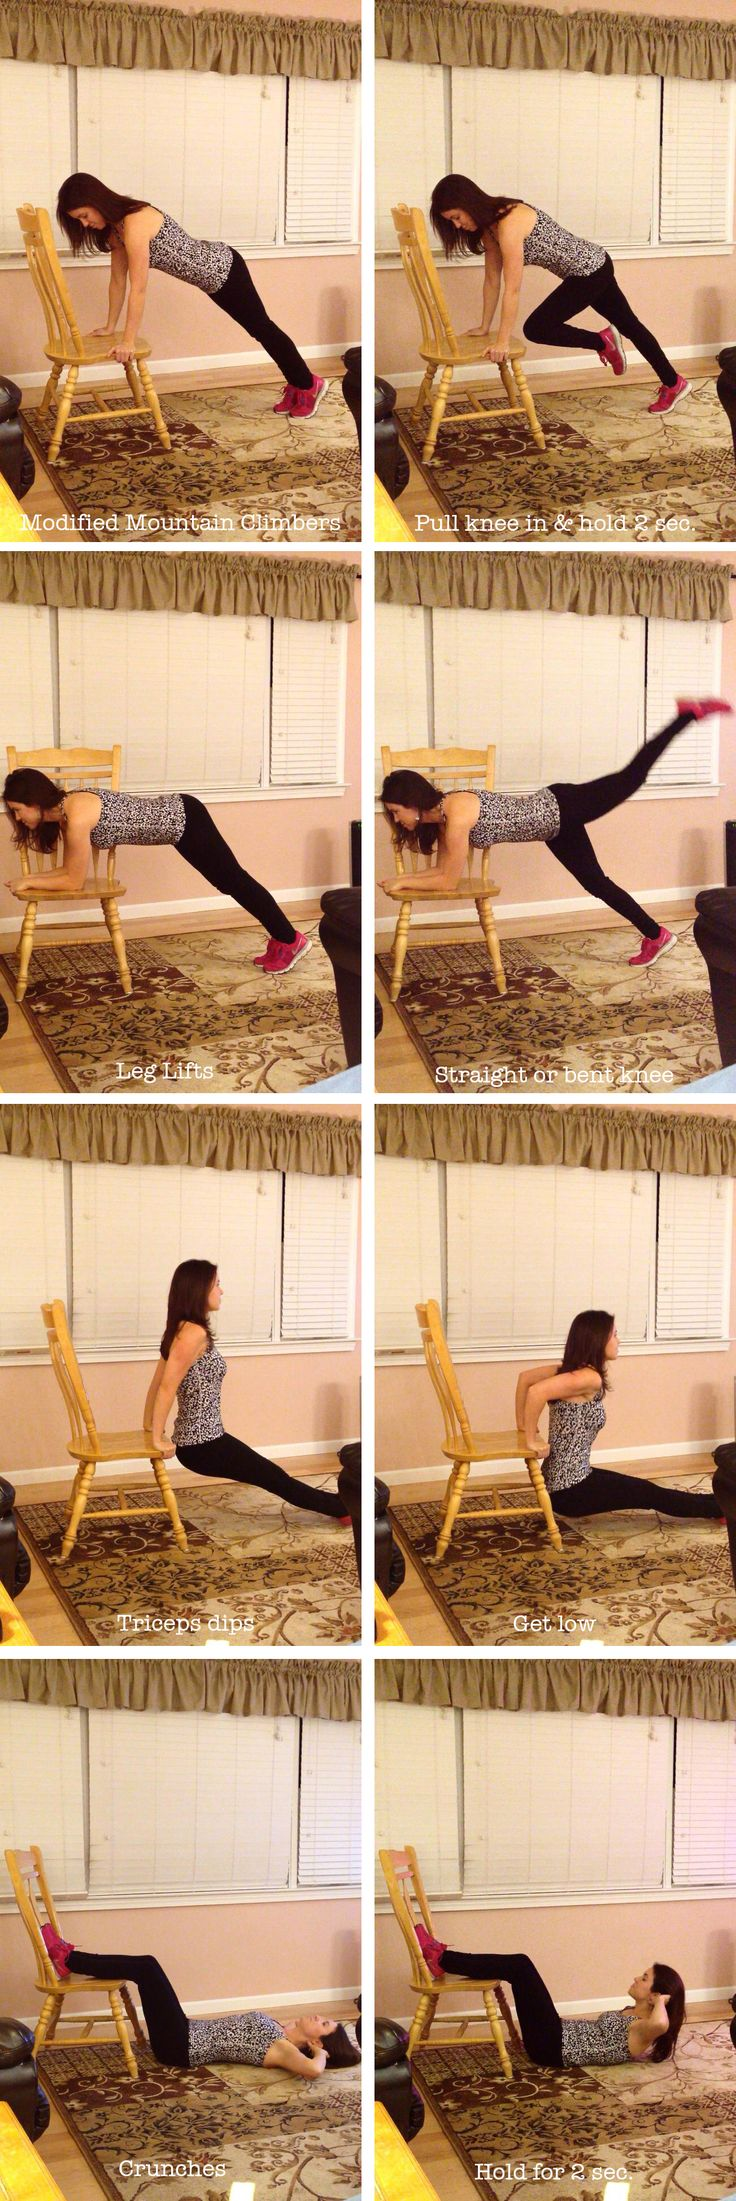 Chair exercises. Modified Mountain Climbers (abs), 20 each side | Leg Lifts (booty), 20-30 each leg | Triceps Dips, 8-15 dips | Crunches, 20-30. Repeat entire circuit 3 or more times. | Workout, fitness, strength, muscle, toning, at home workouts, no gym, healthy, fit mom, fibromyalgia.